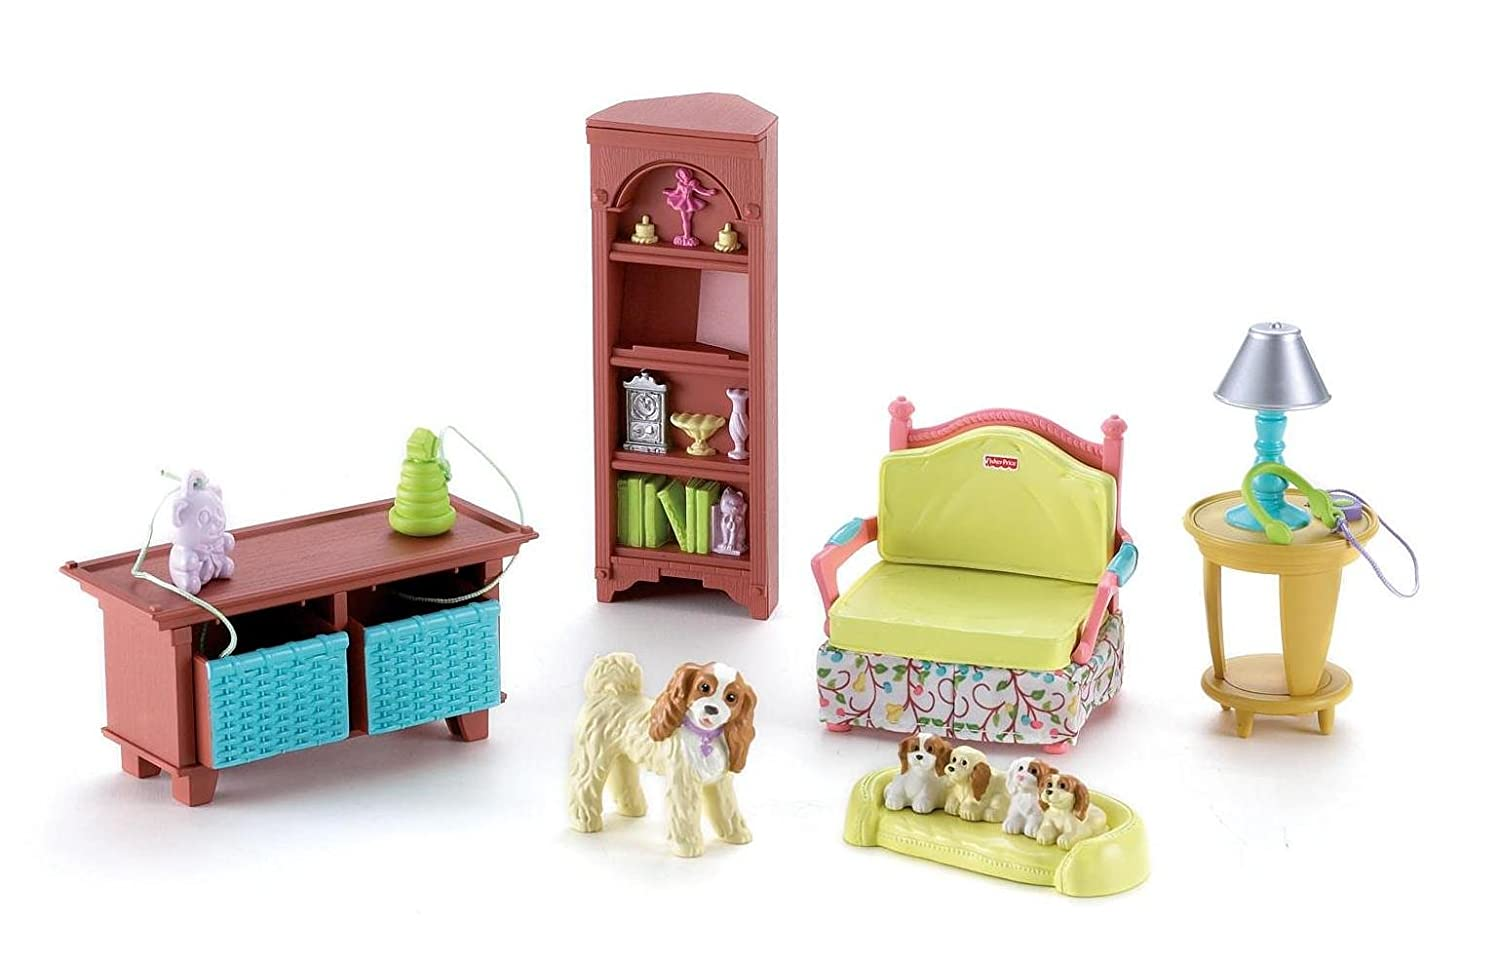 Fisher price doll house furniture - Amazon Com Fisher Price Loving Family Loving Family Living Room Toys Games